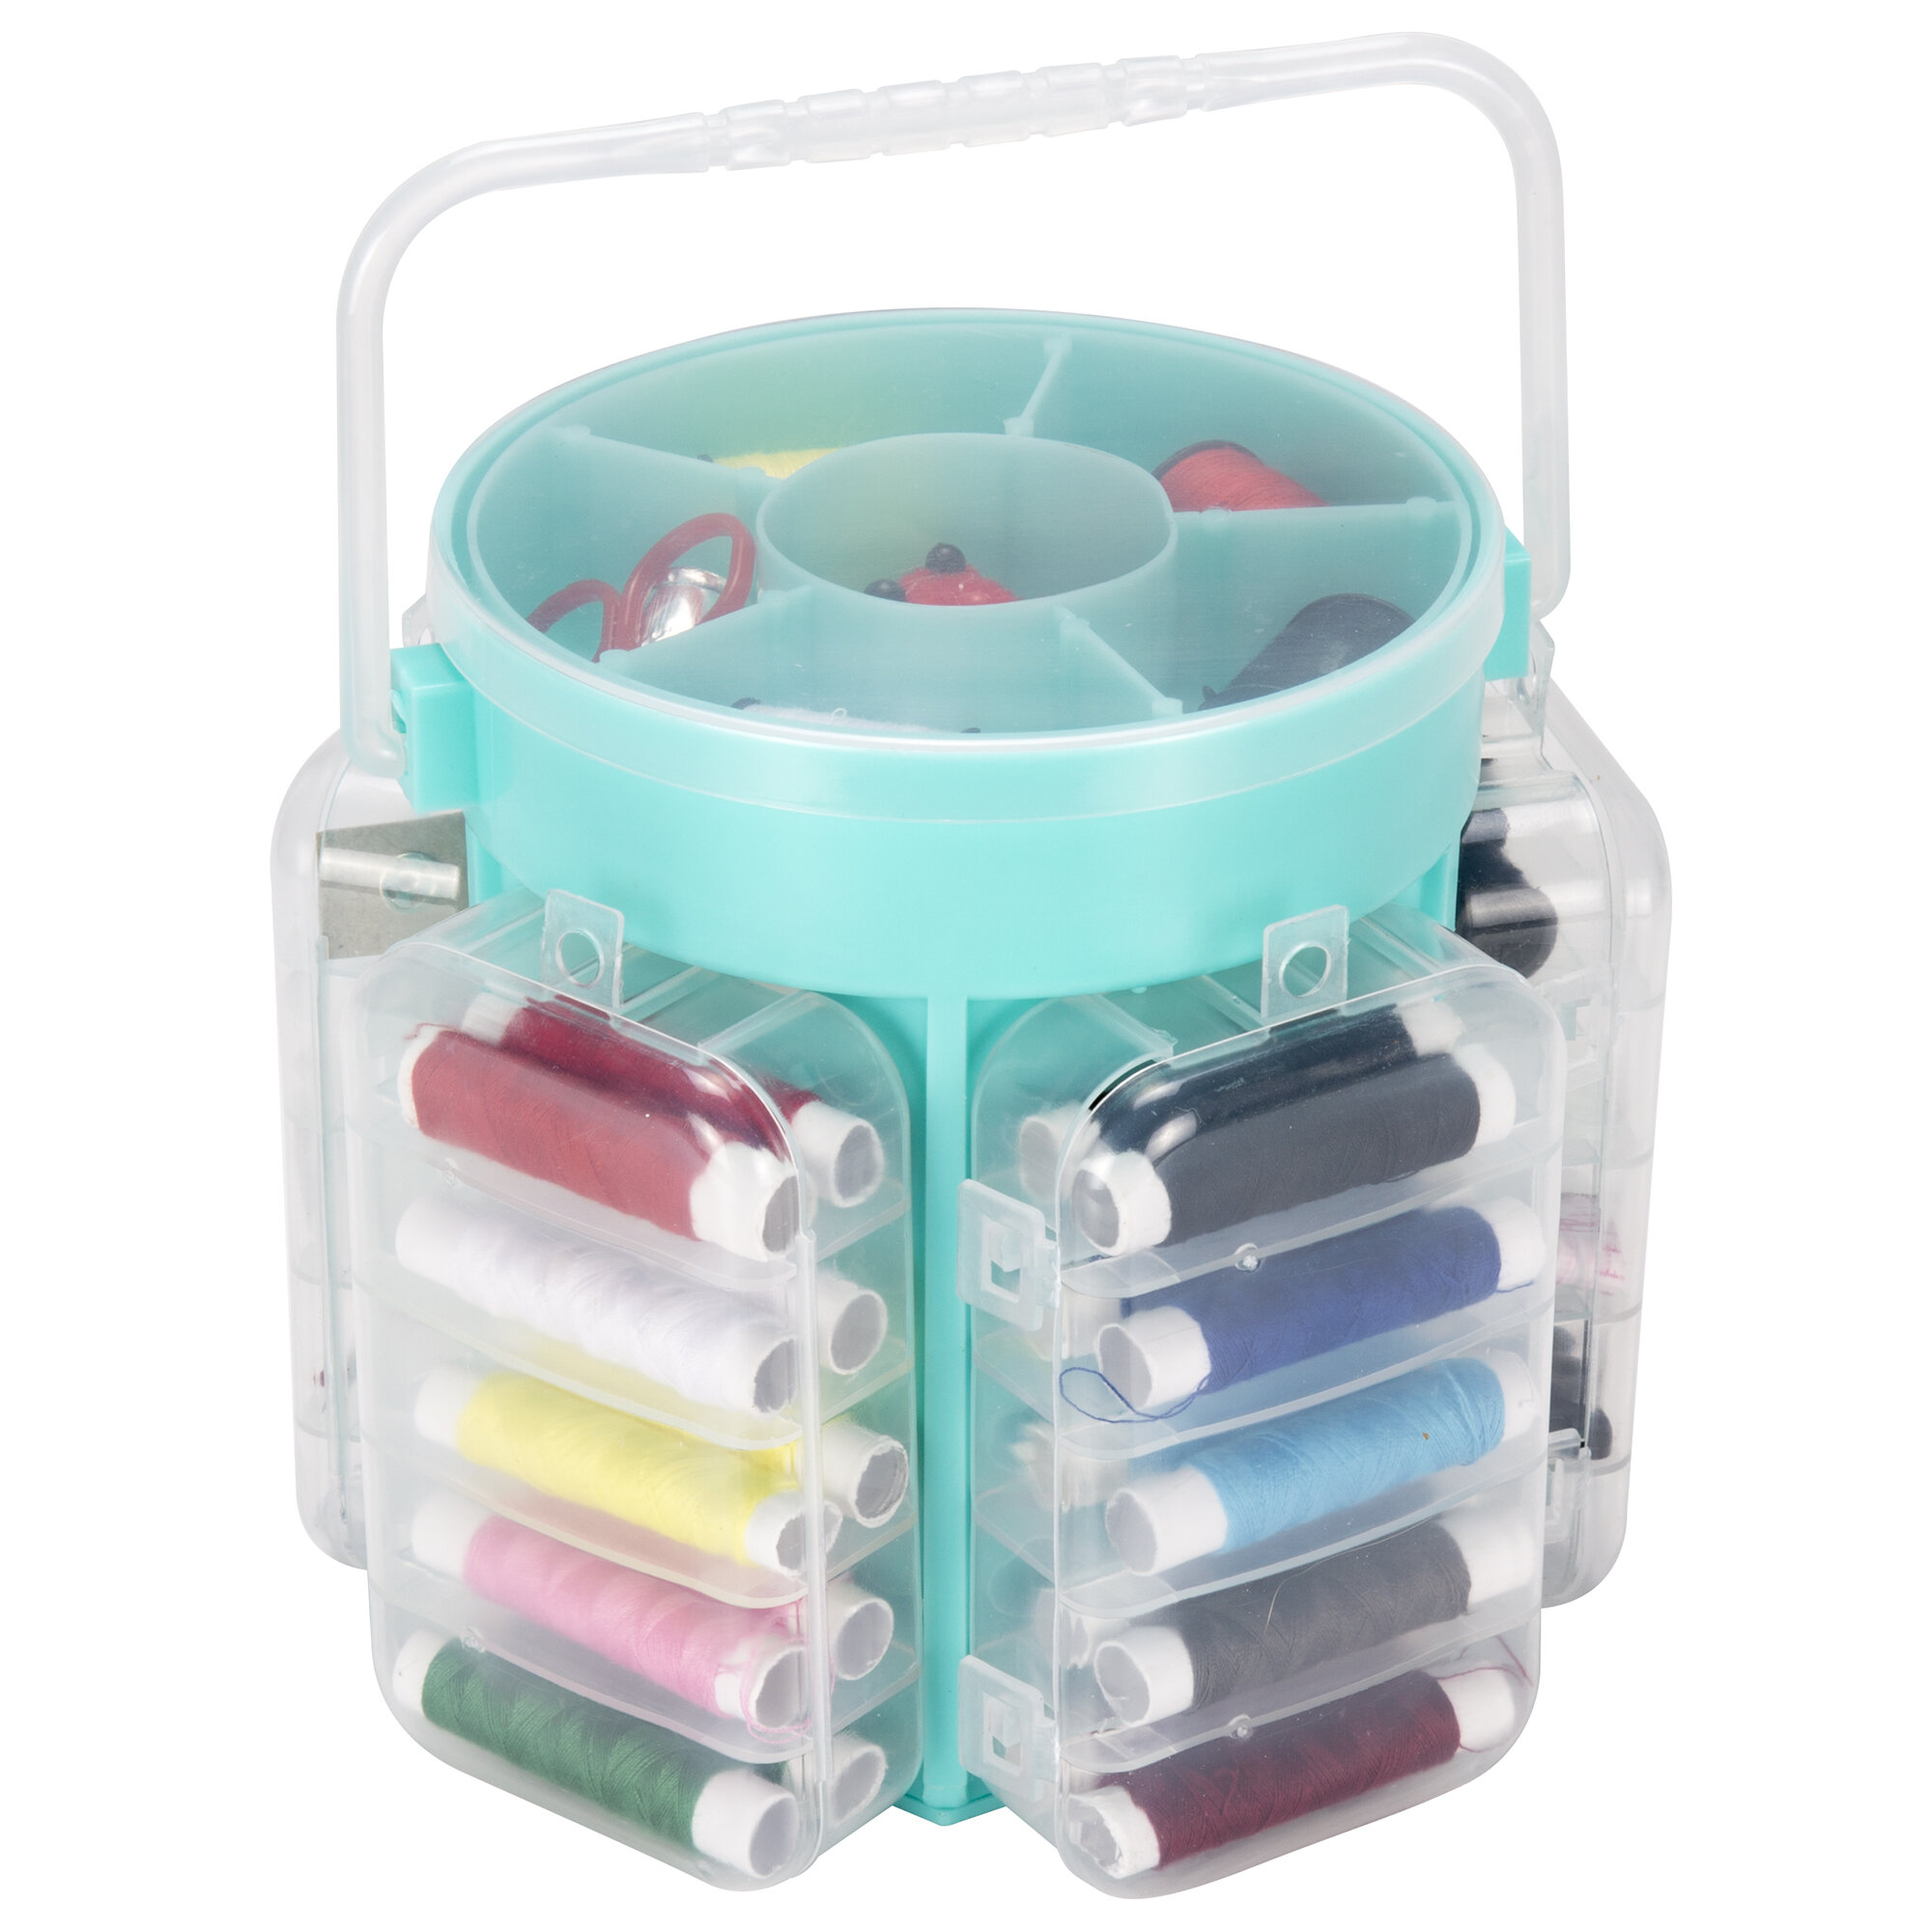 Everyday Home 210 Piece Sewing Kit and Caddy & Reviews | Wayfair